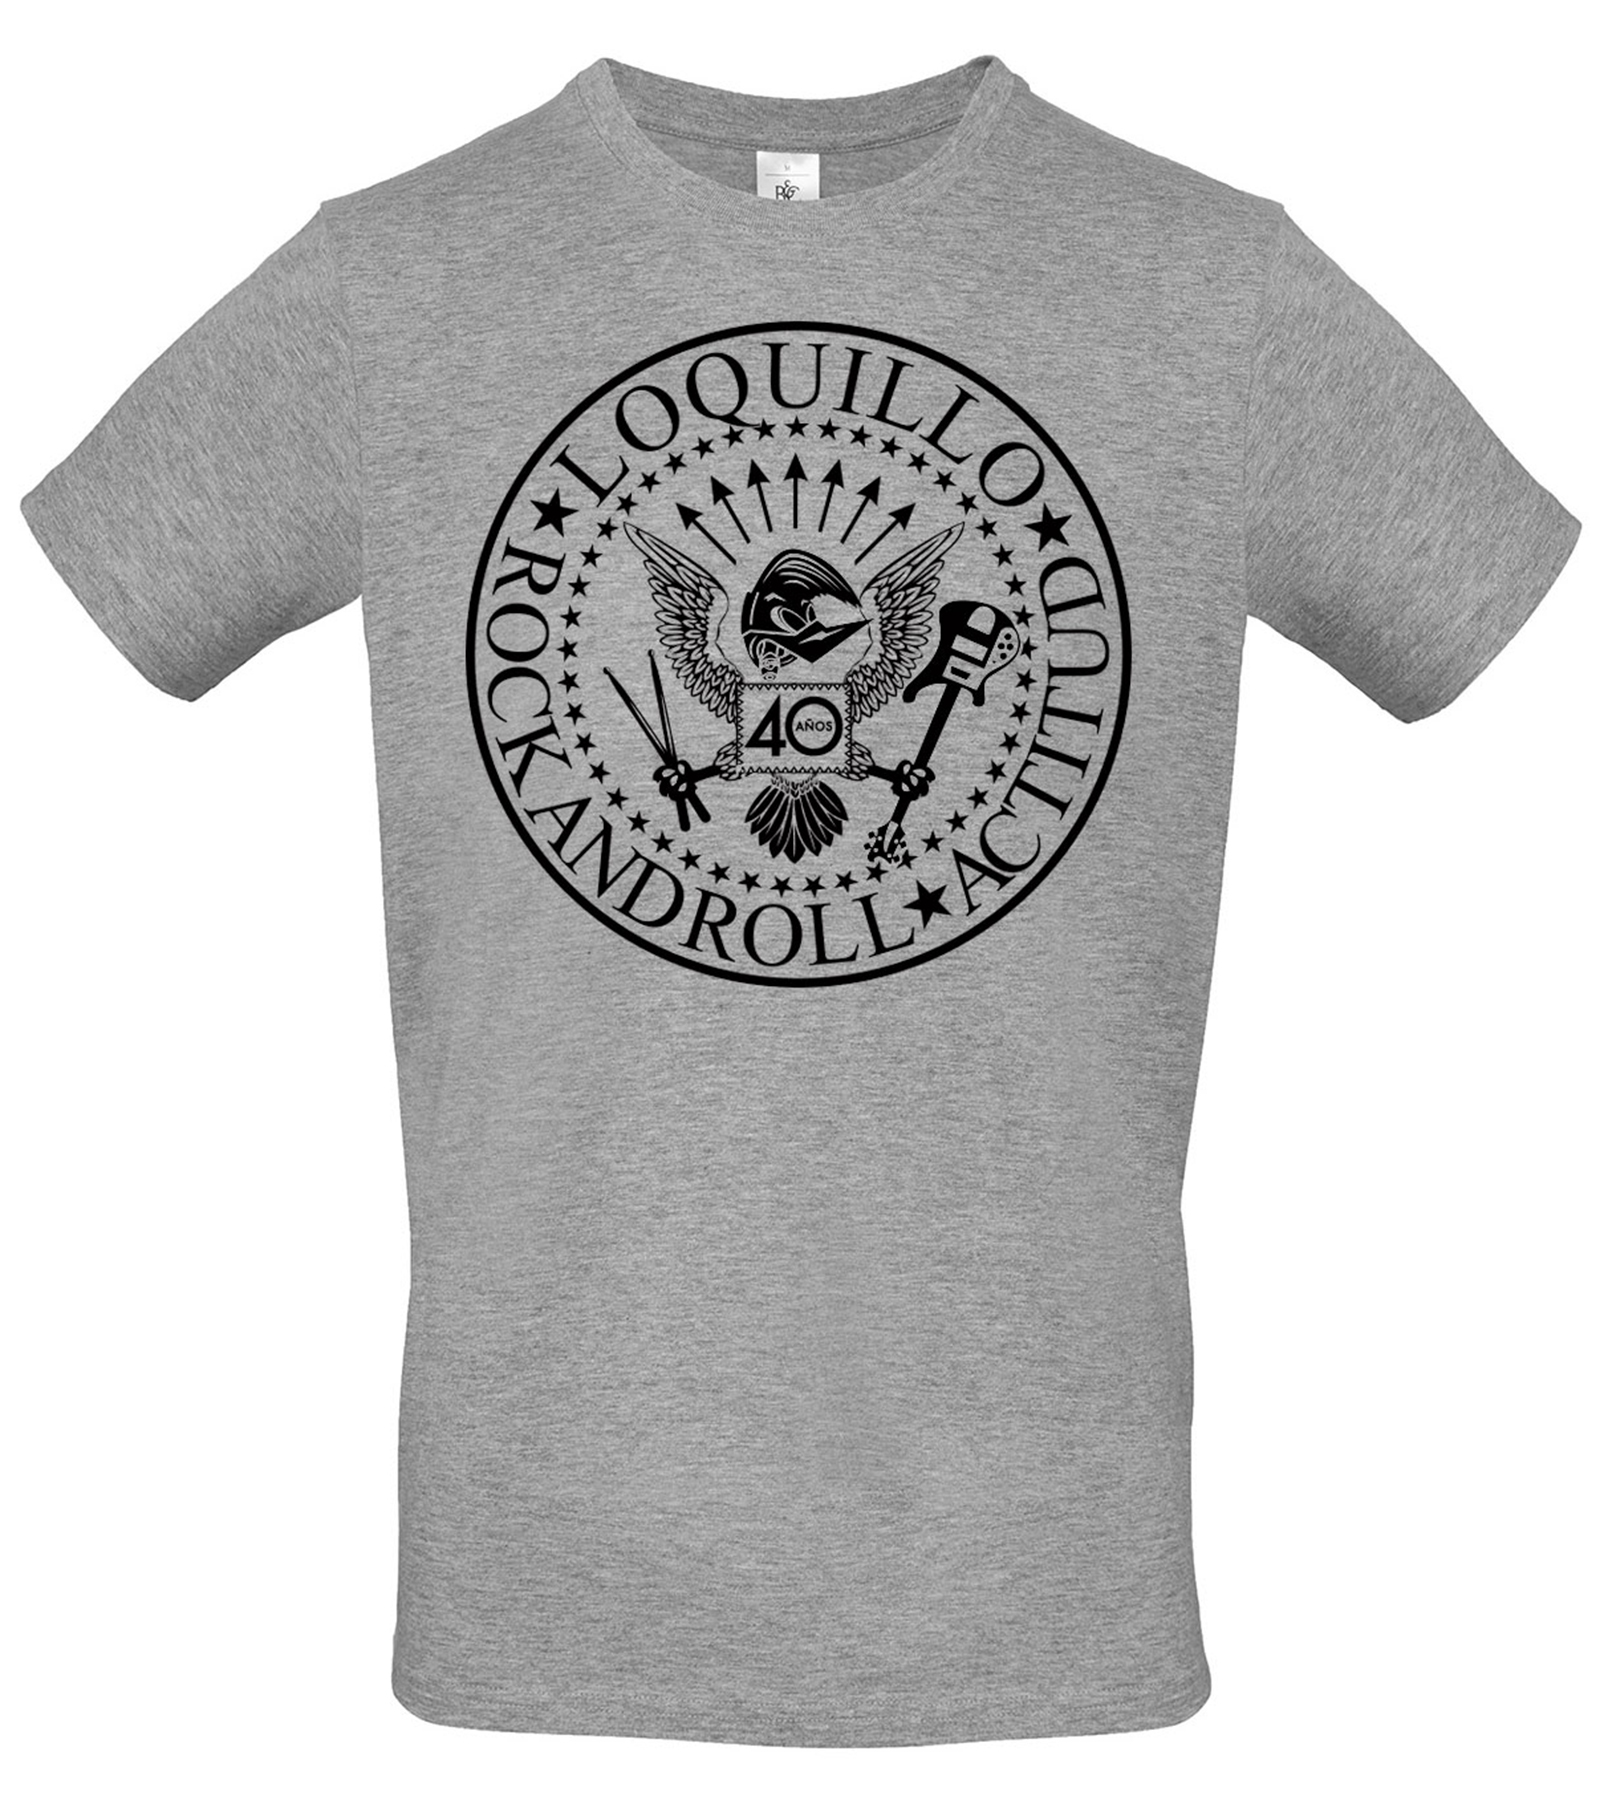 2db0e5346 Camiseta Gris 40 Años Rock And Roll Actitud